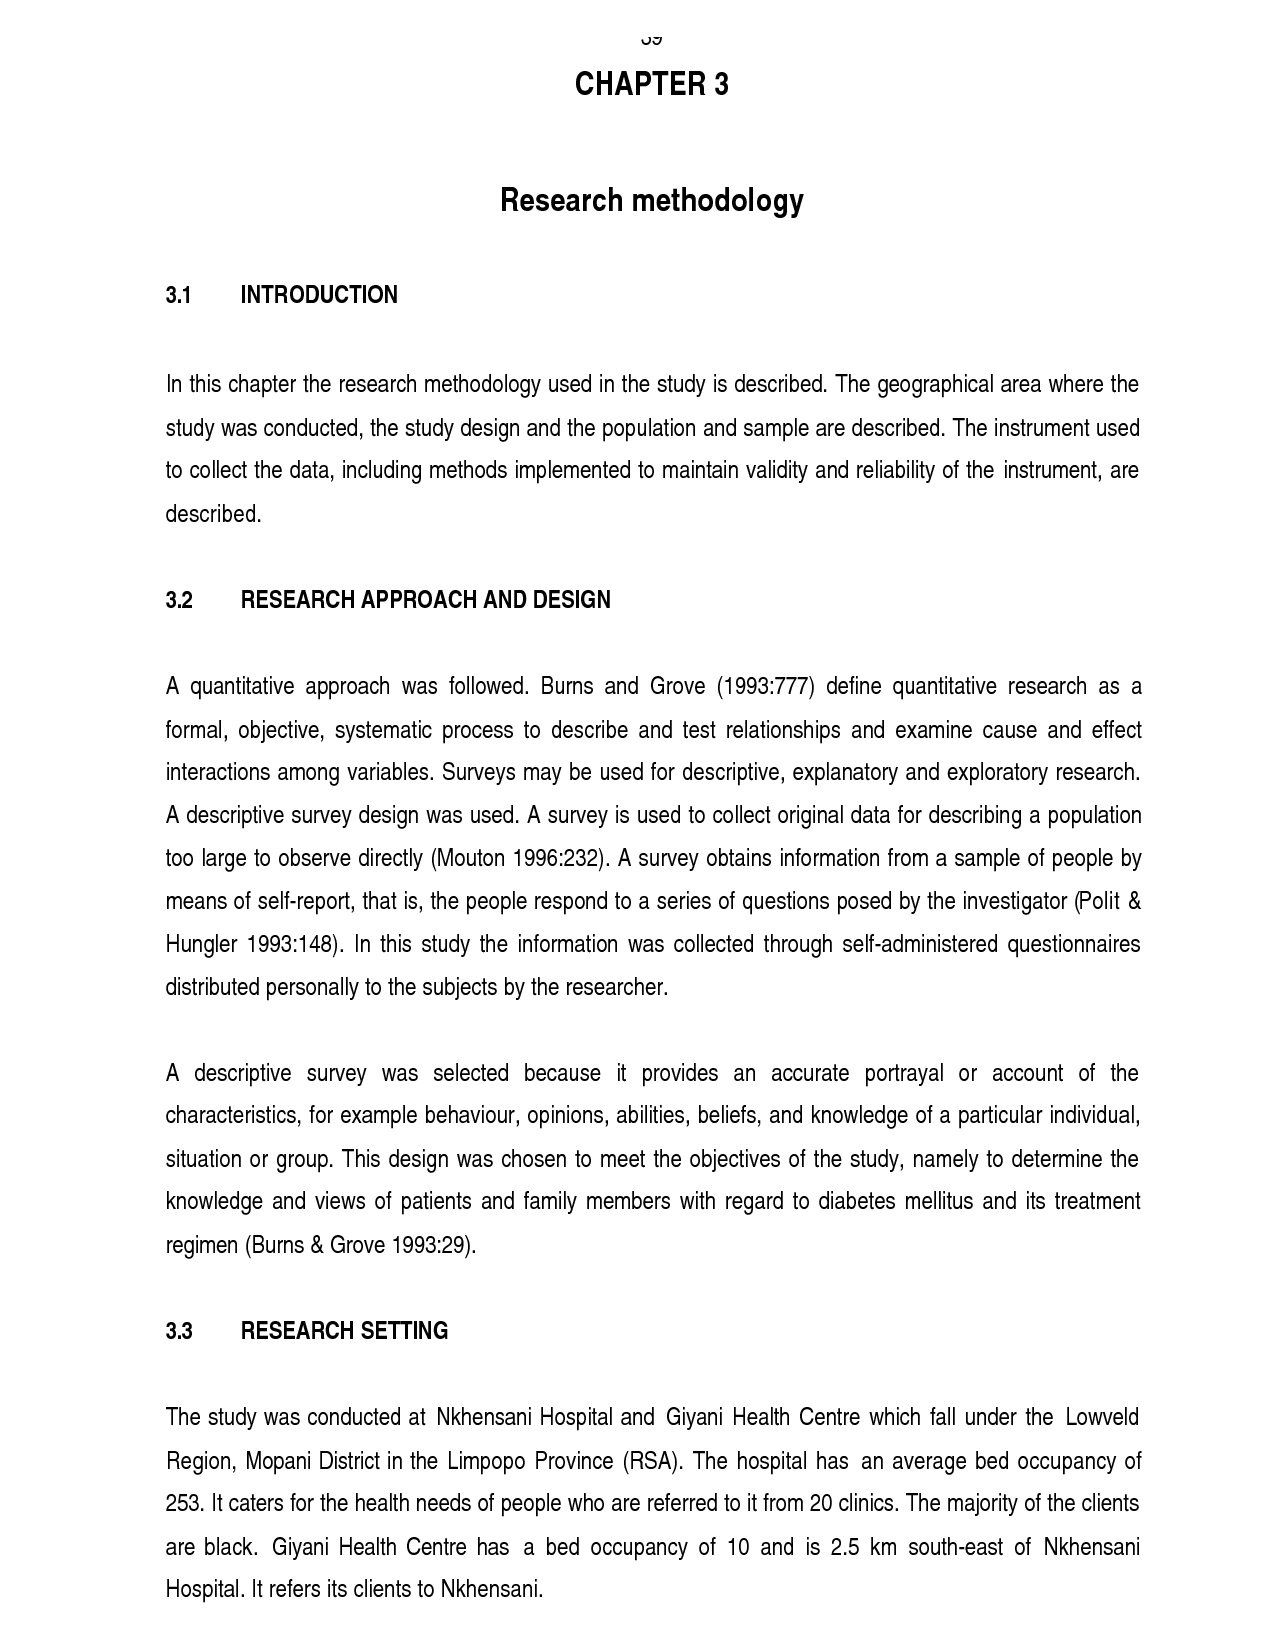 descriptive method of research thesis Chapter 3 research and methodology 5 pages chapter 3 research and methodology uploaded by research design this study used the descriptive method of research.